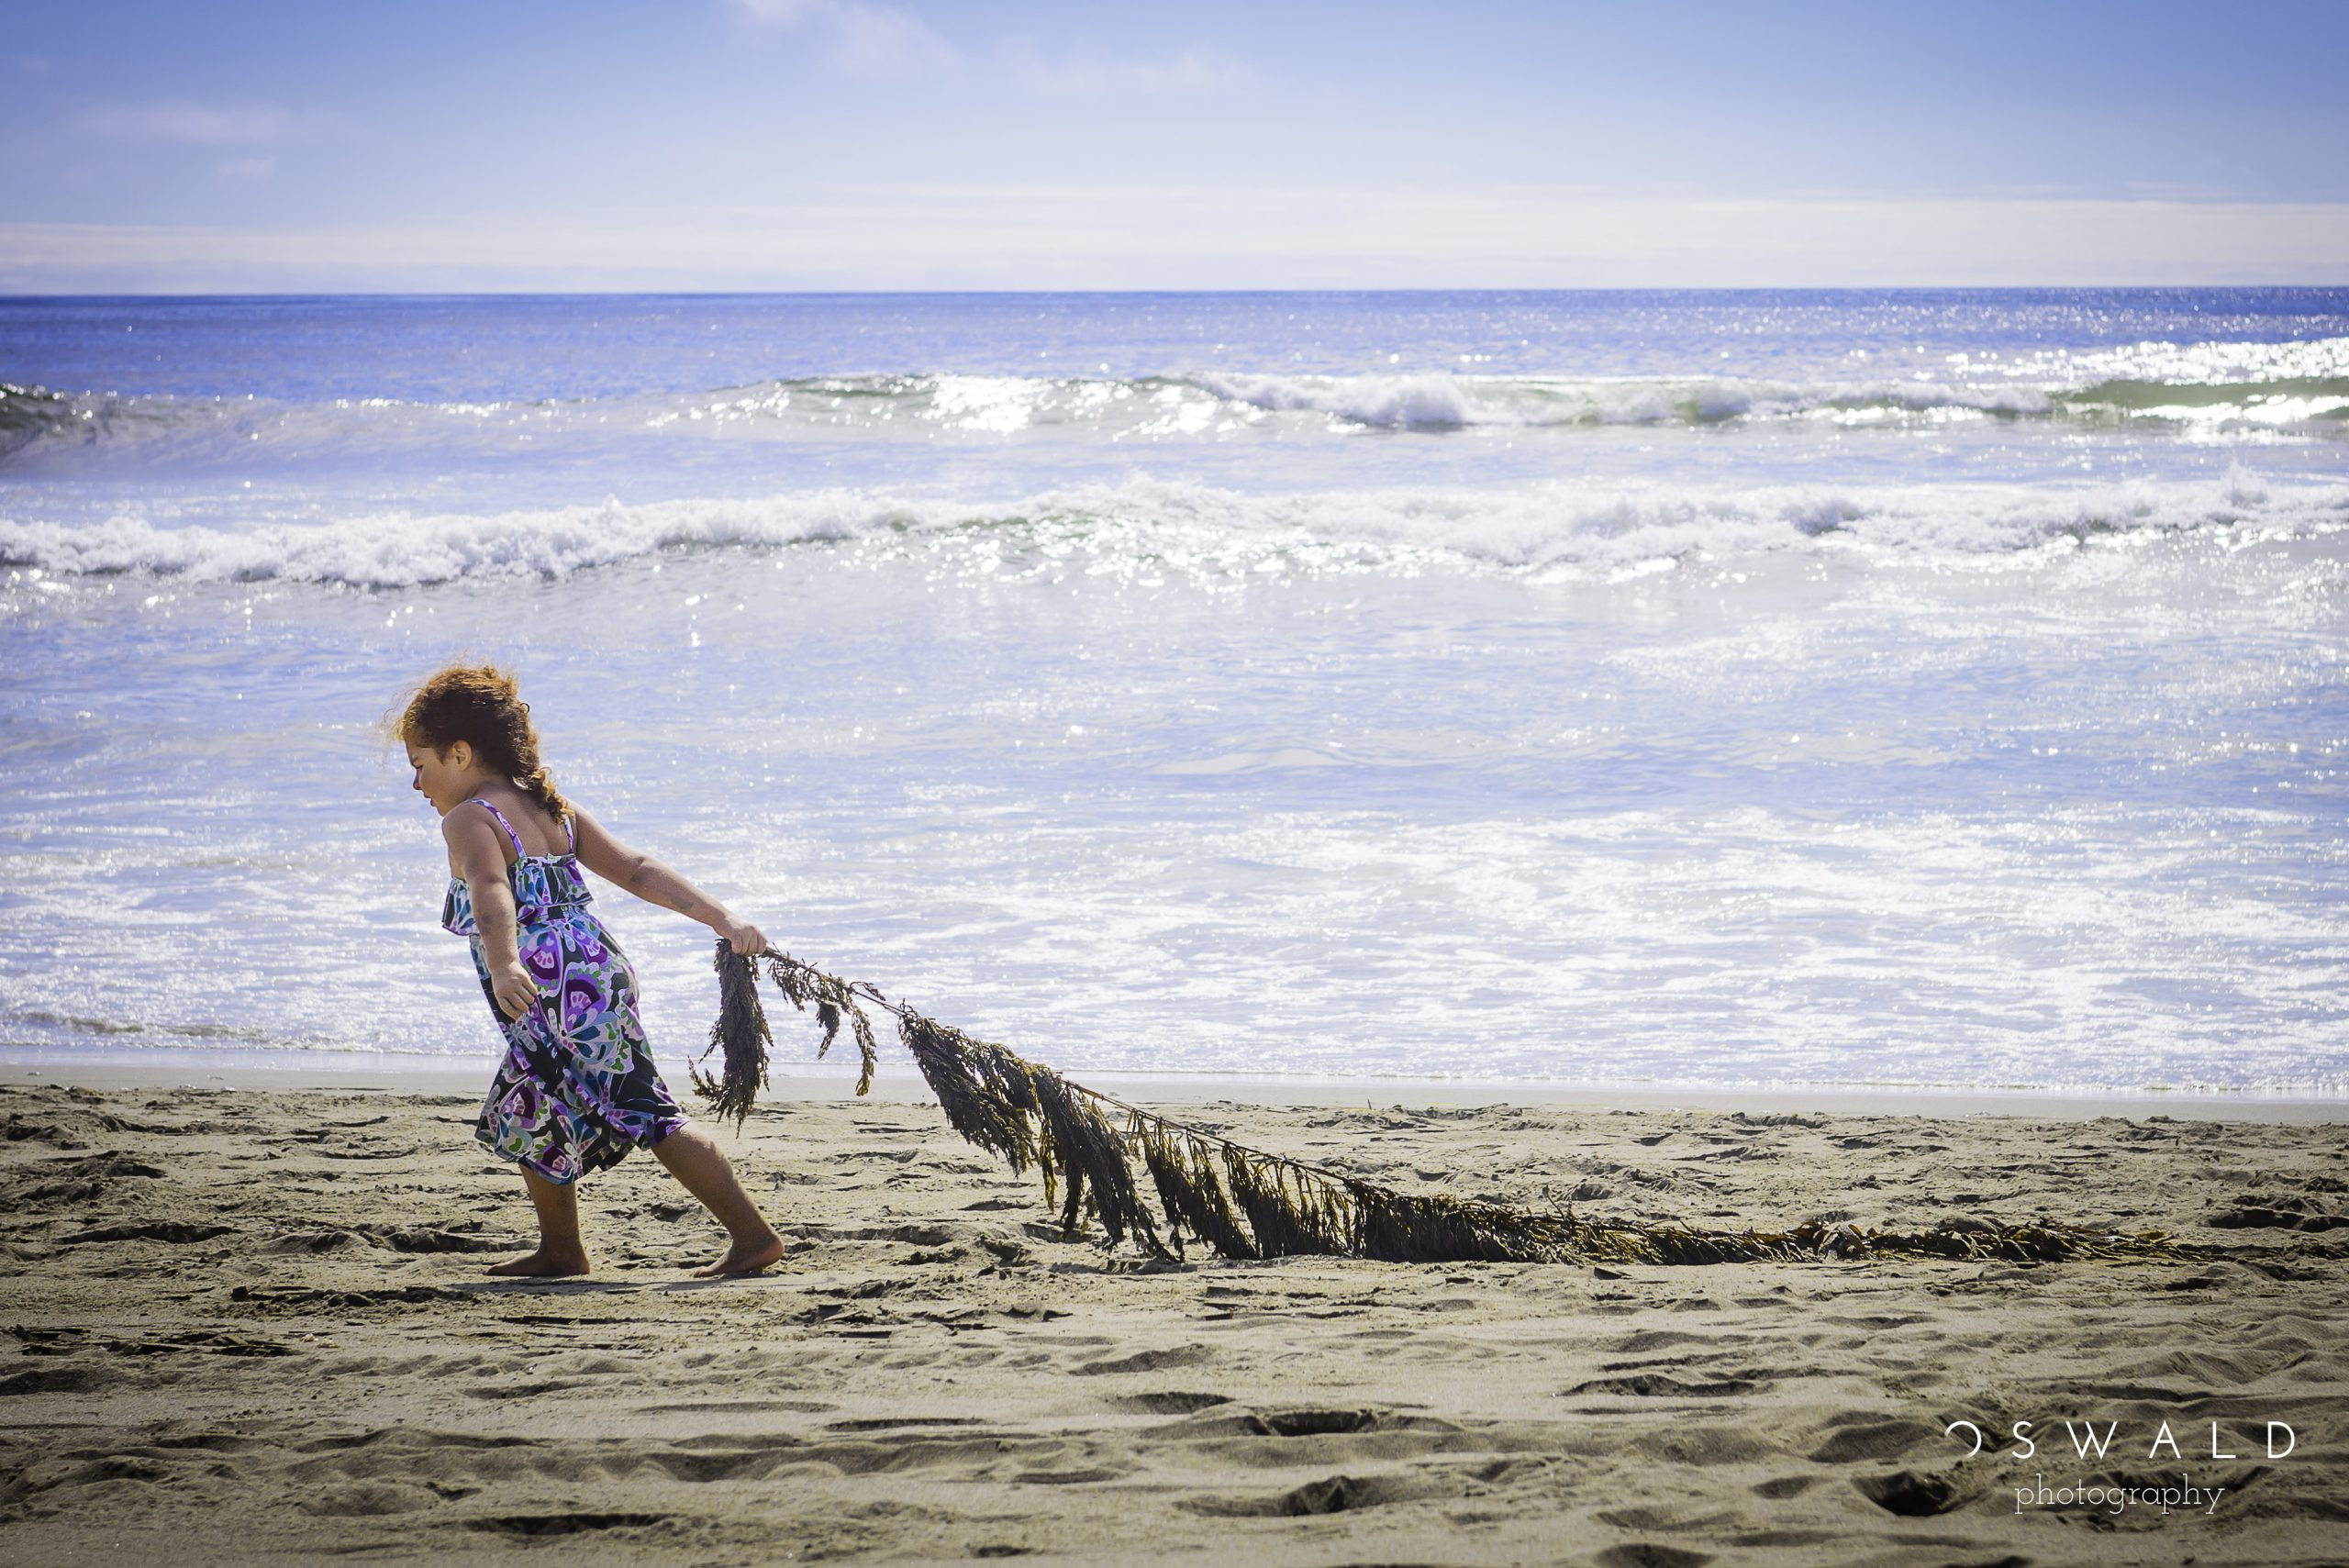 A young red-headed girl walks down a sandy beach pulling a large piece of seaweed behind her.